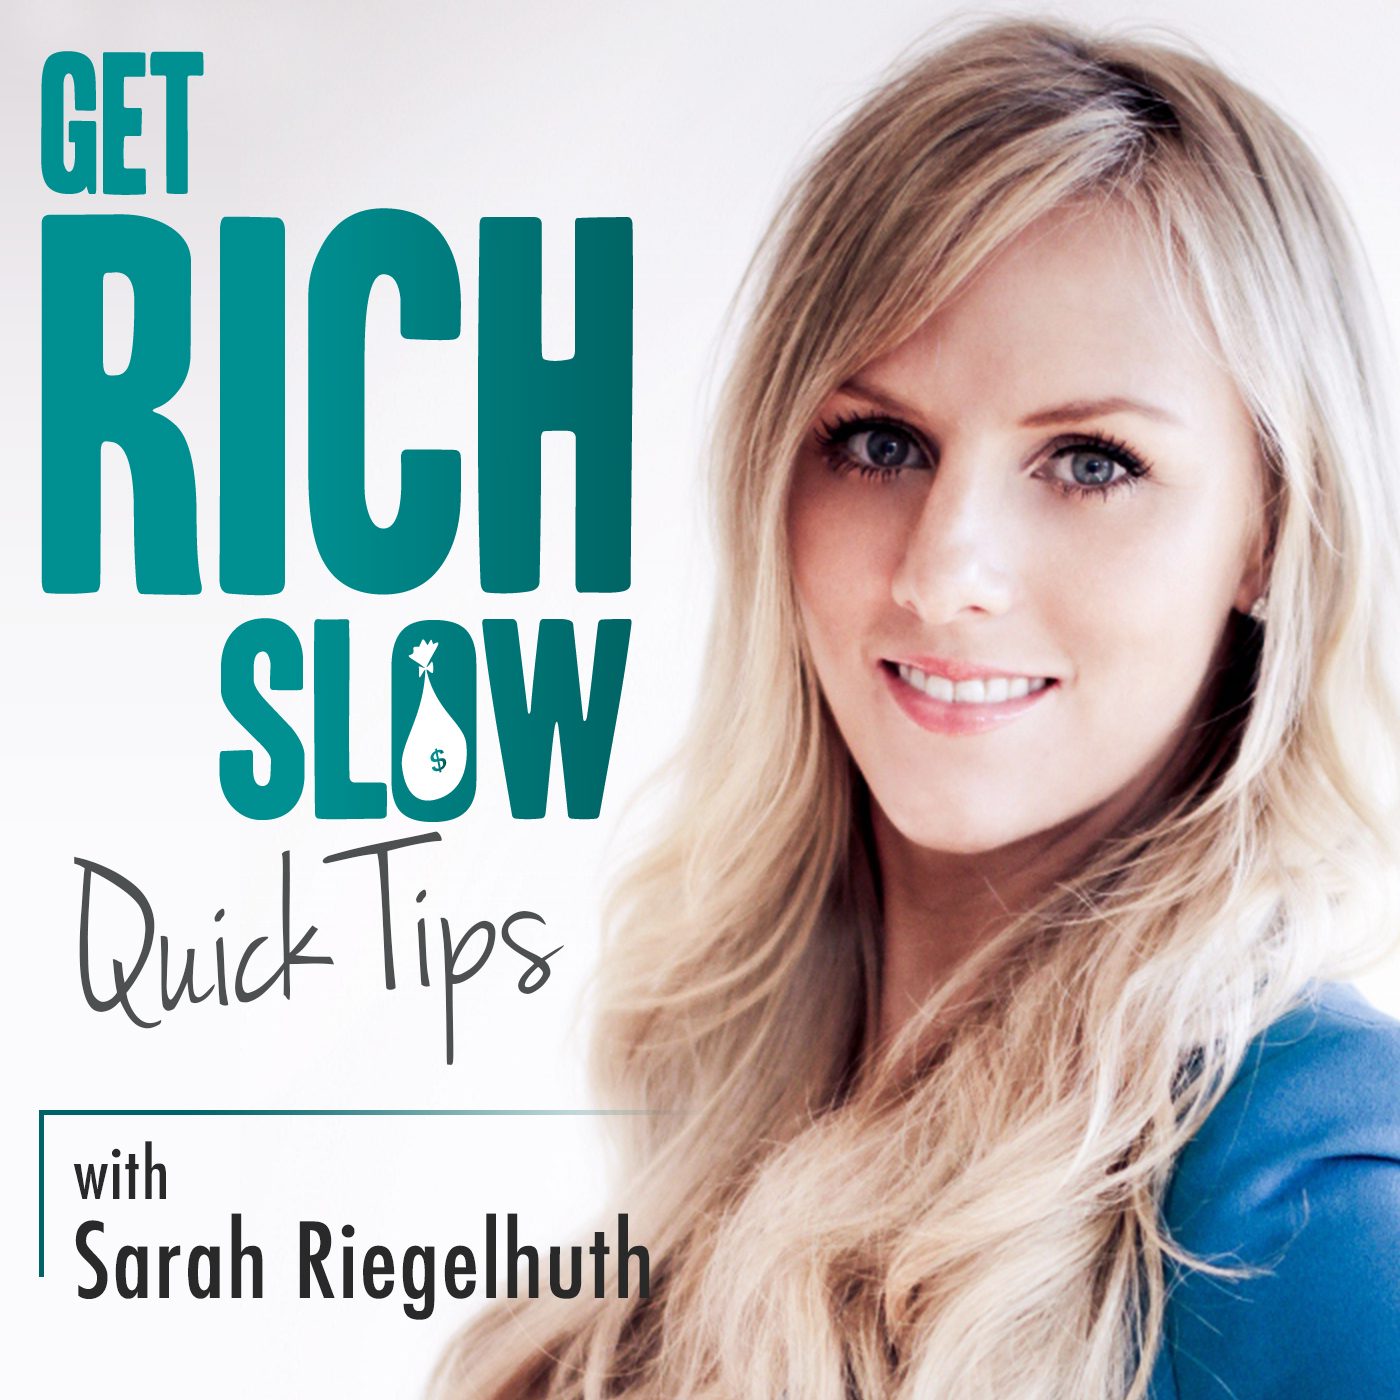 Get Rich Slow Quick Tips with Sarah Riegelhuth